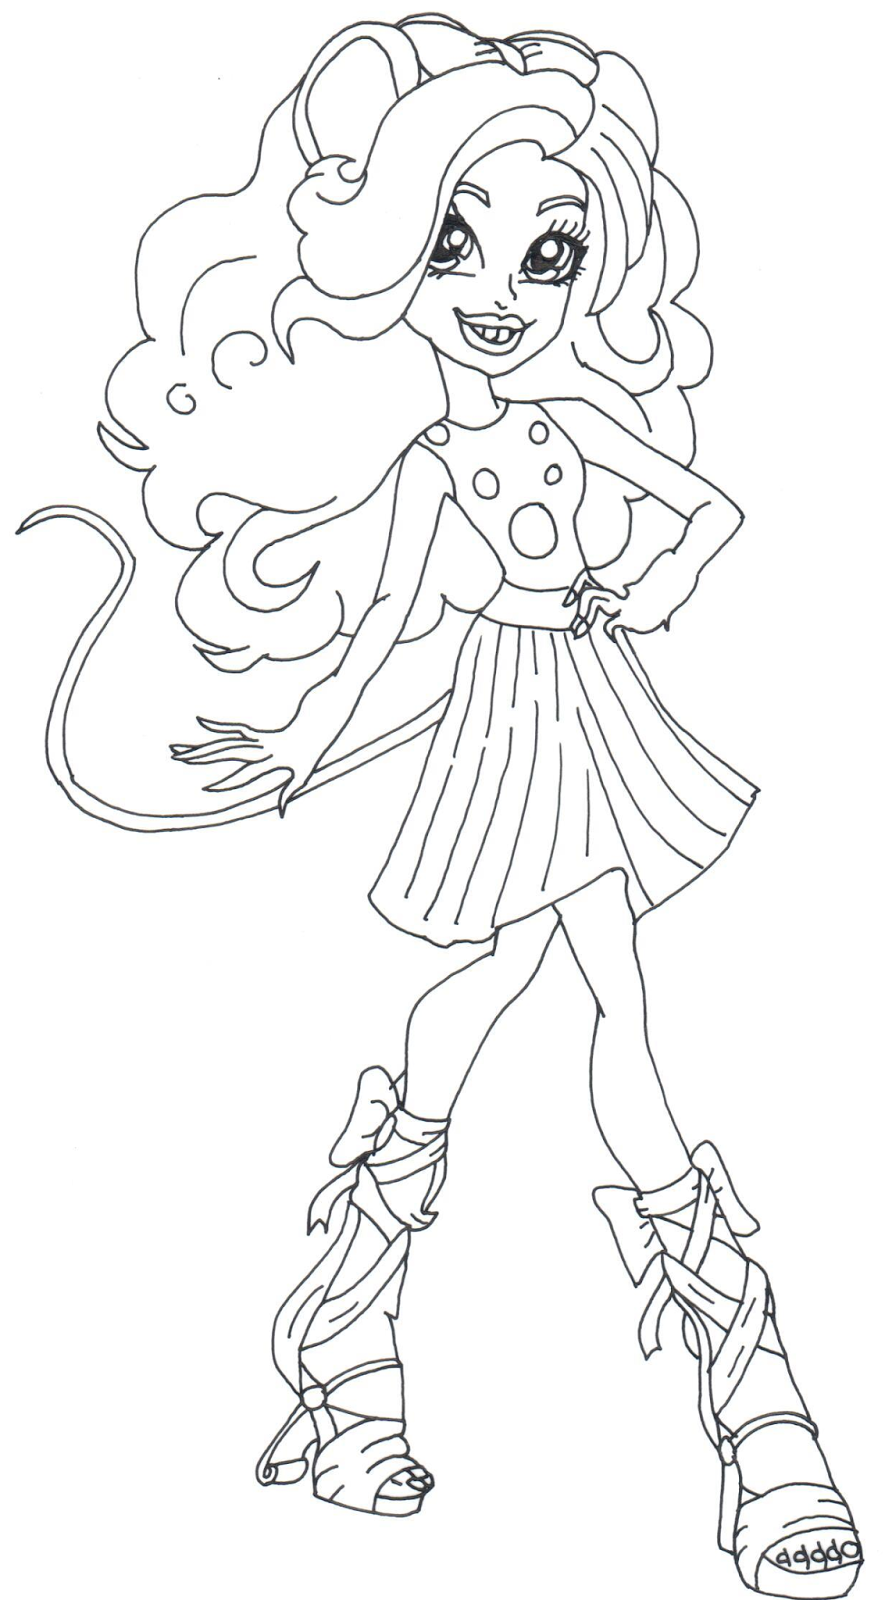 mouscedes king monster high coloring page